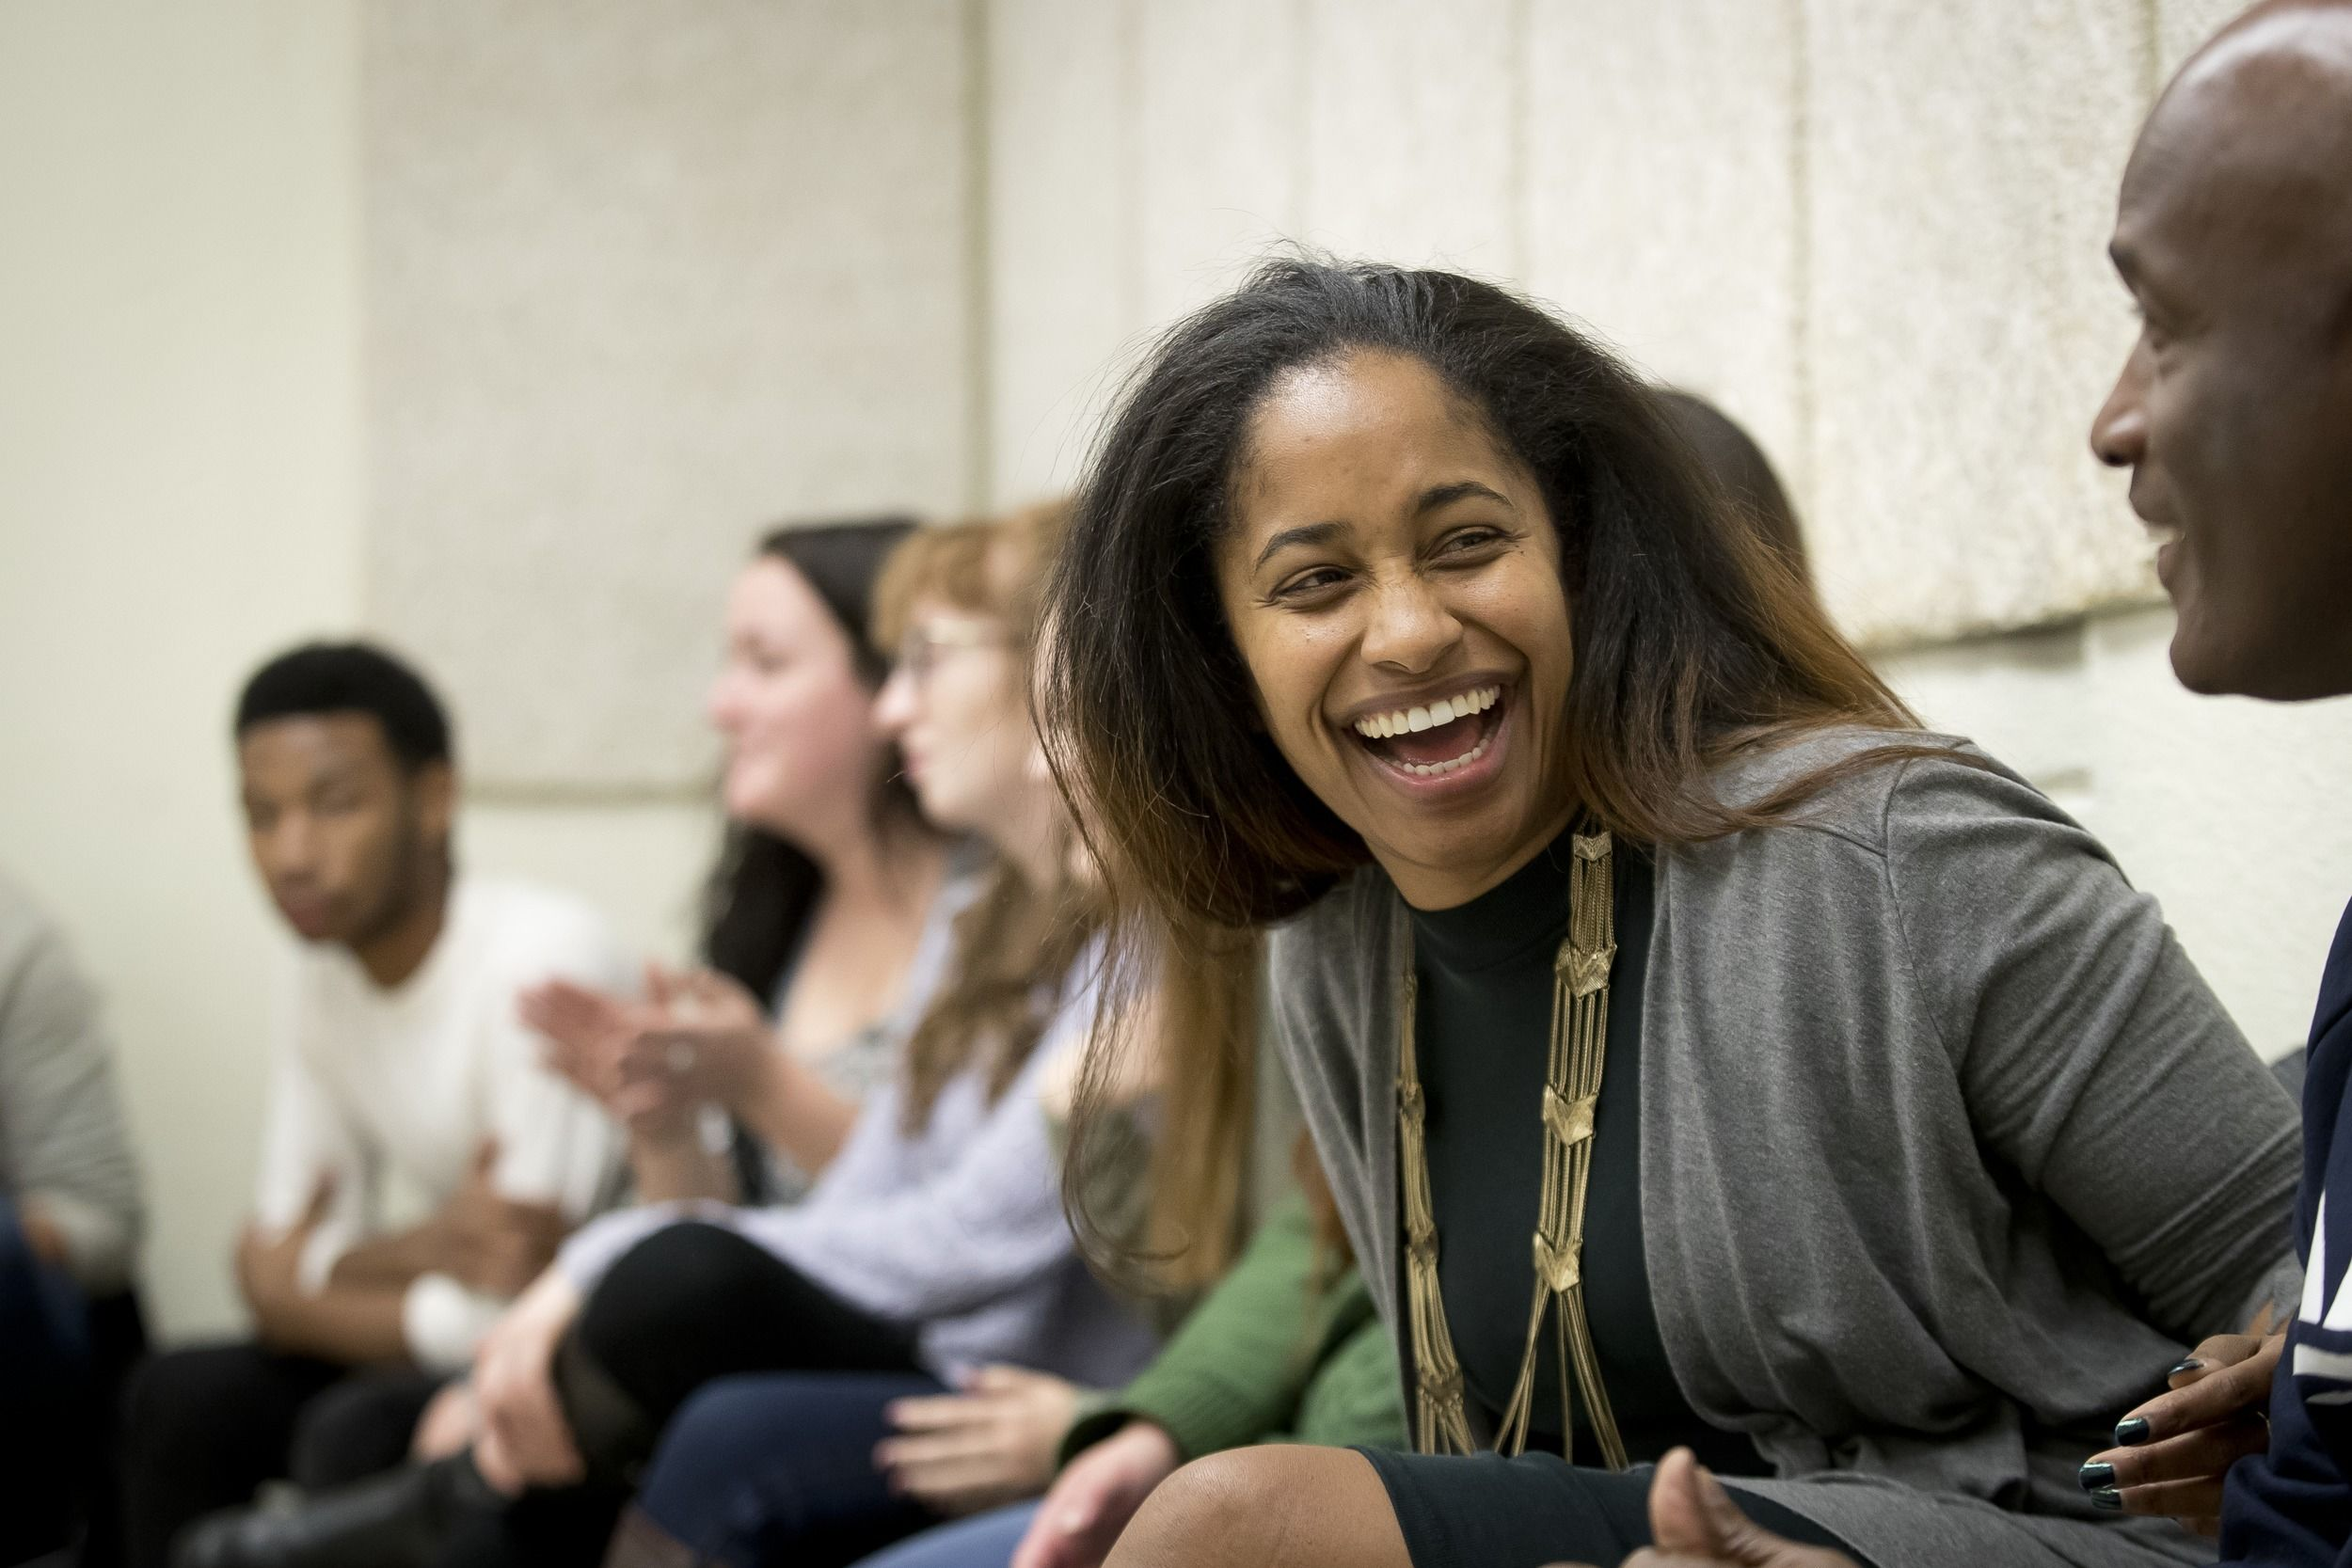 Students talk during a class at Temple.